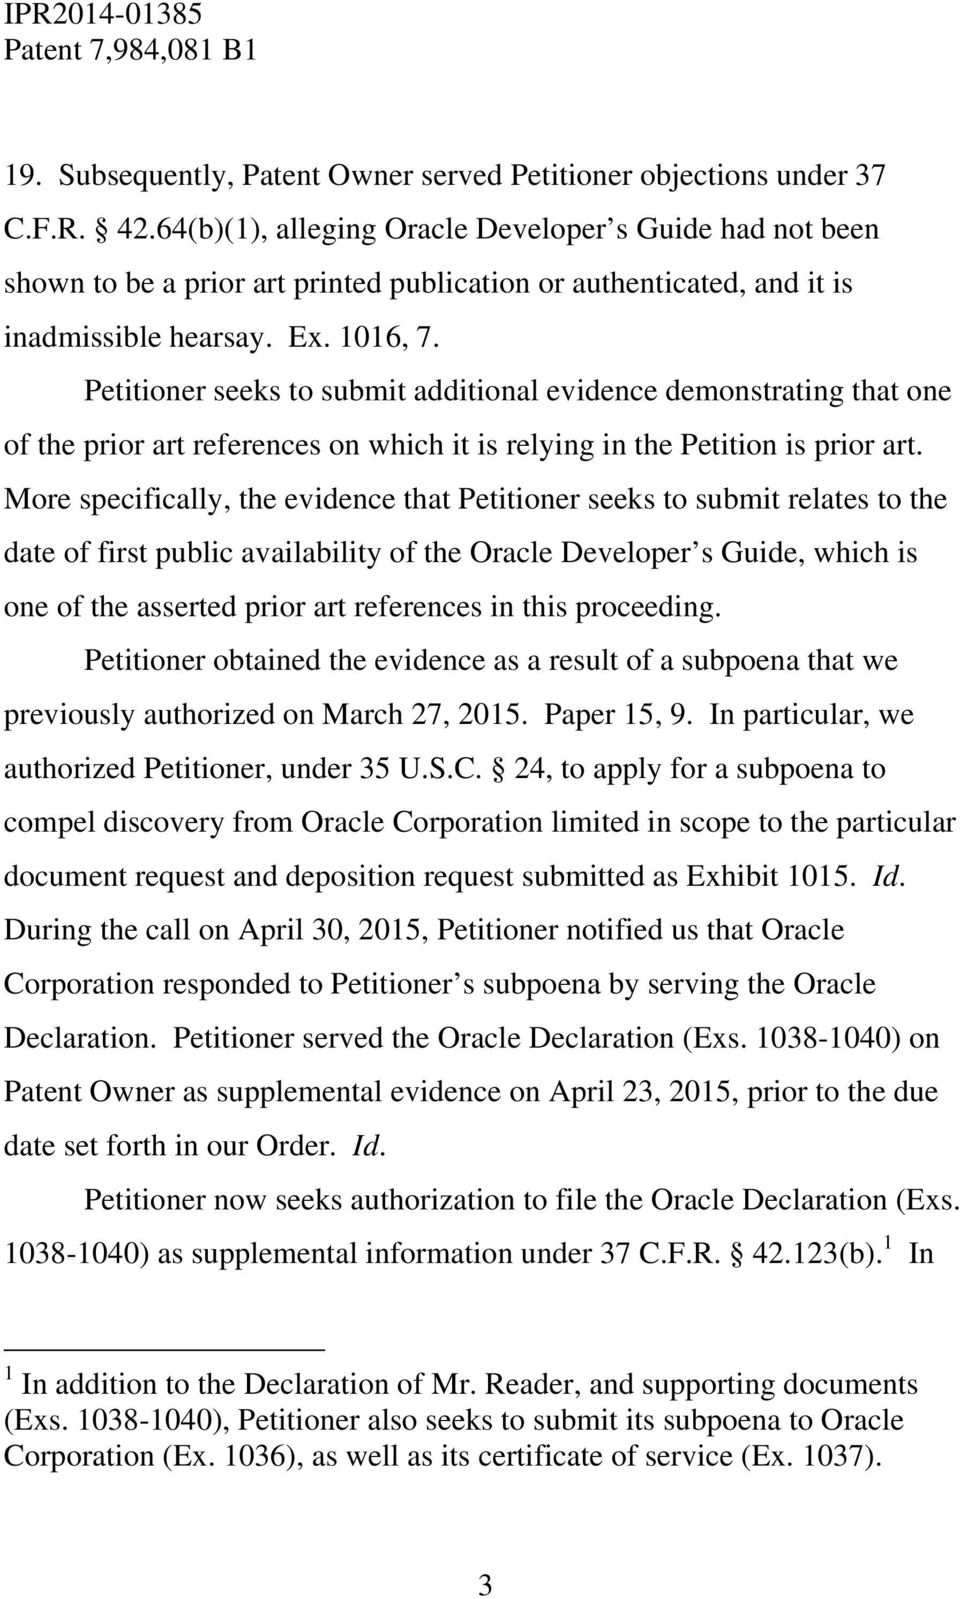 Petitioner seeks to submit additional evidence demonstrating that one of the prior art references on which it is relying in the Petition is prior art.